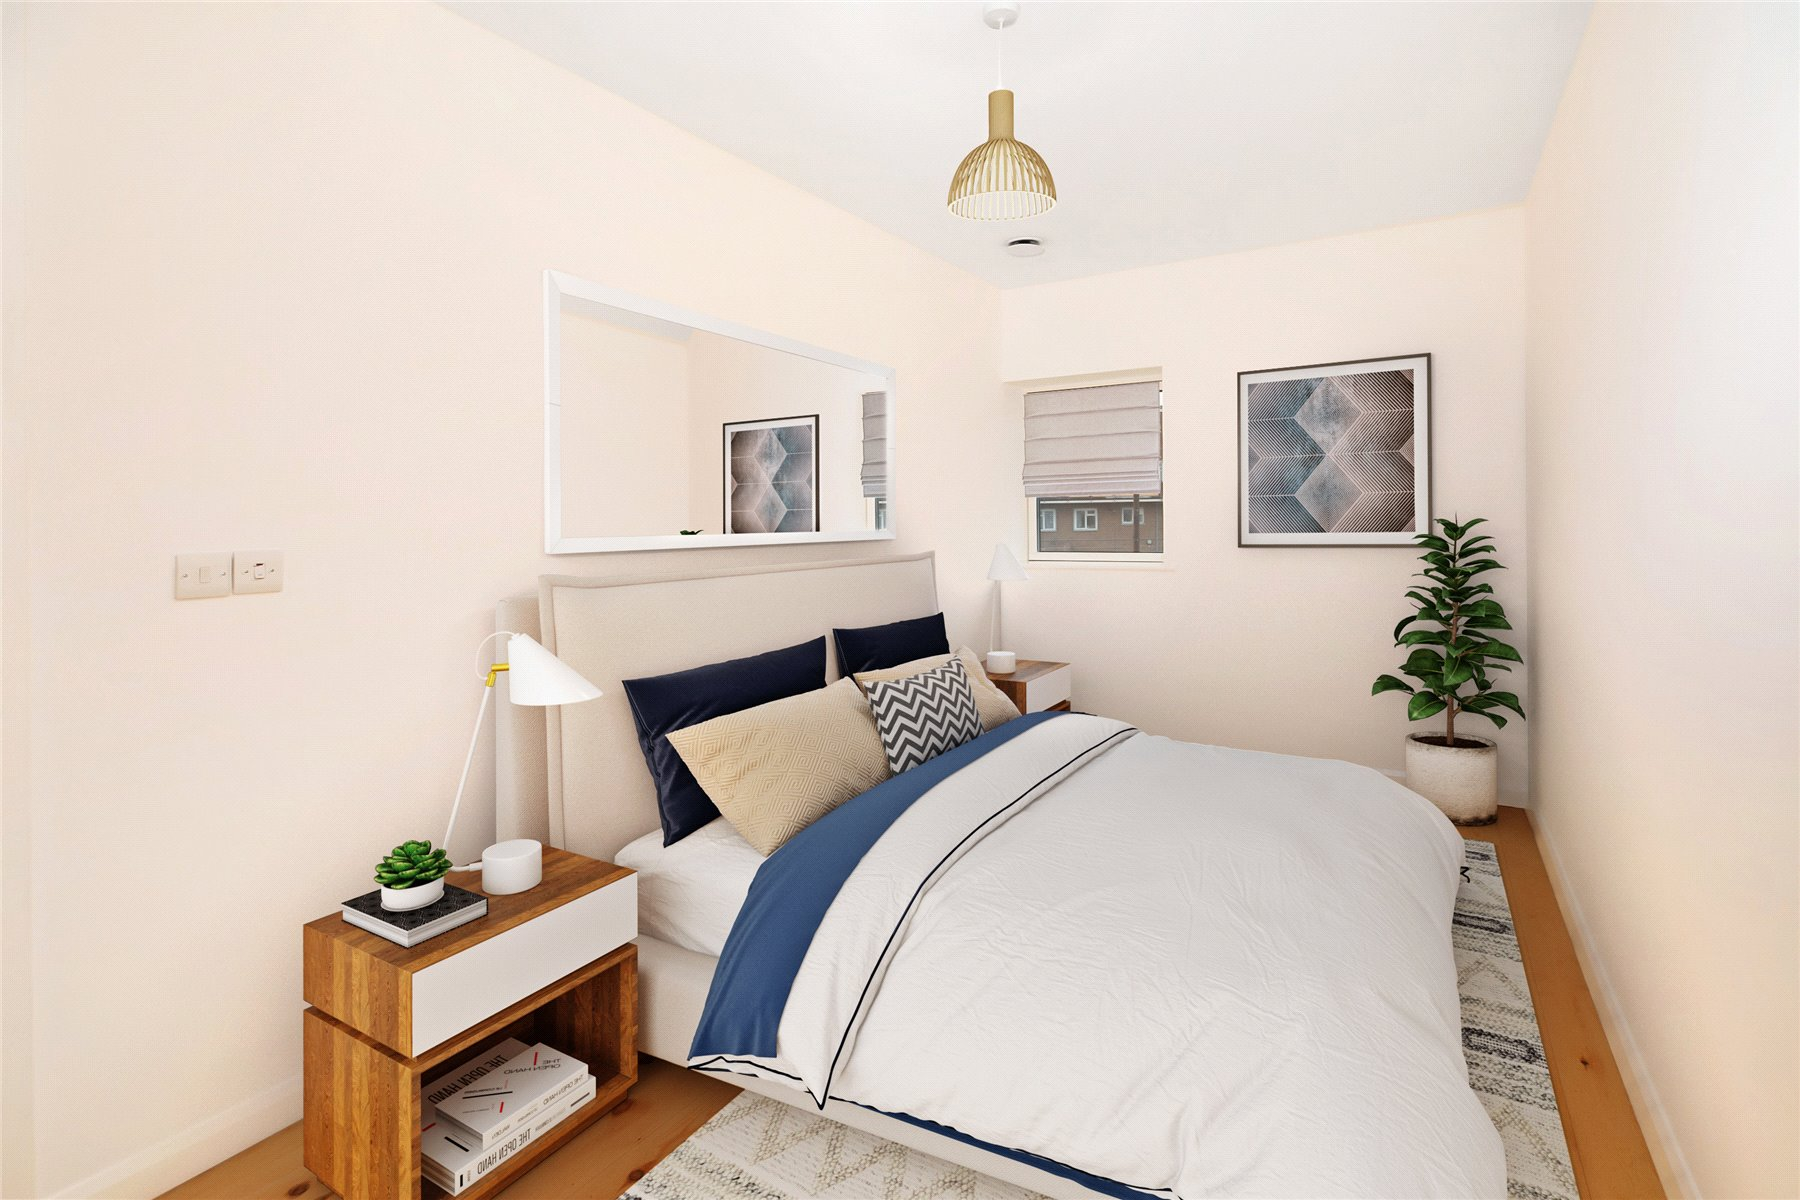 3 Bedroom Terraced For Sale In Devon Exeter Estate Agents Property Buying And Letting